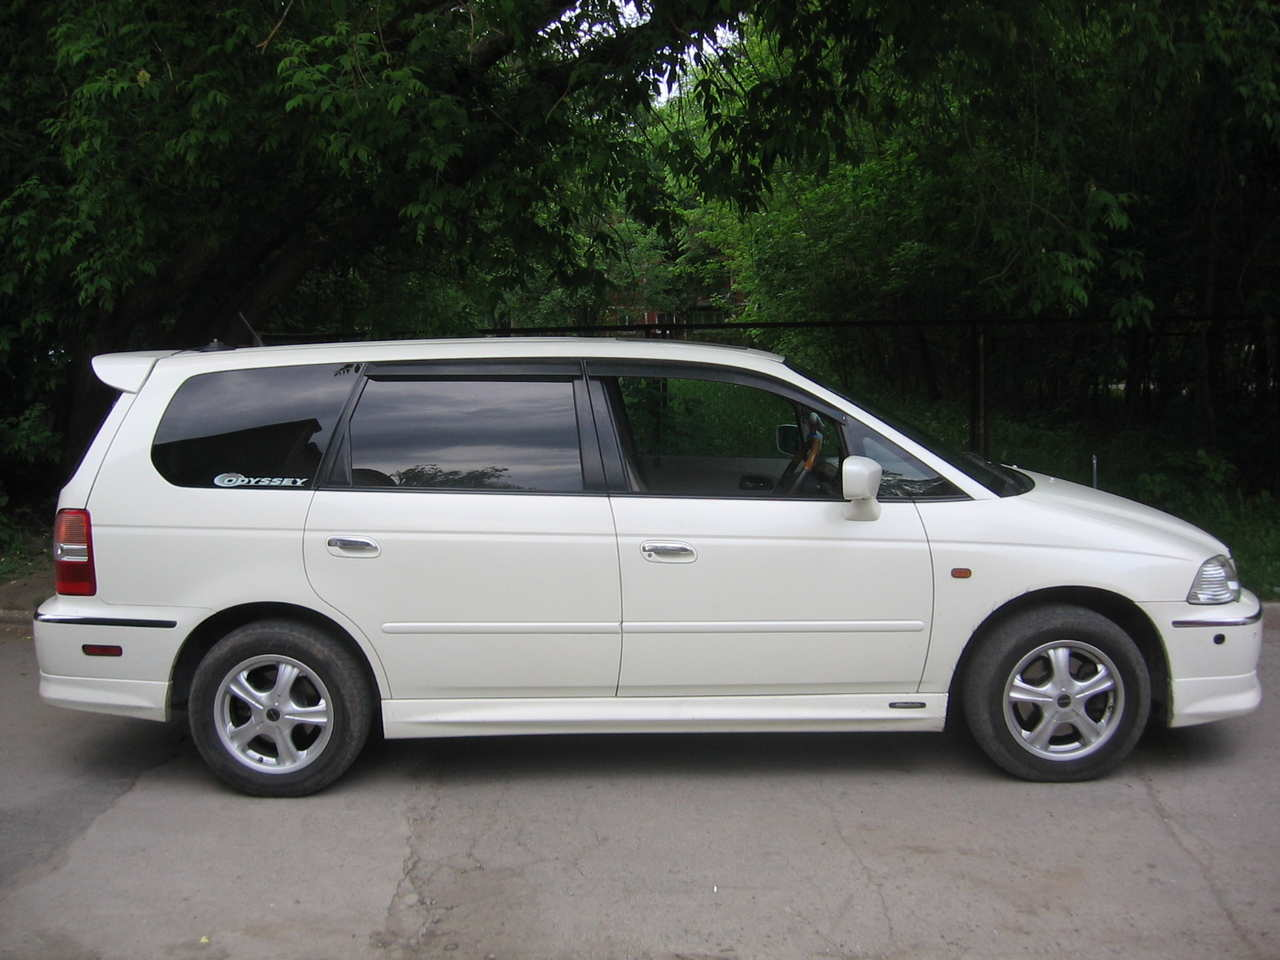 2001 honda odyssey pictures gasoline automatic for 2001 honda odyssey transmission problems